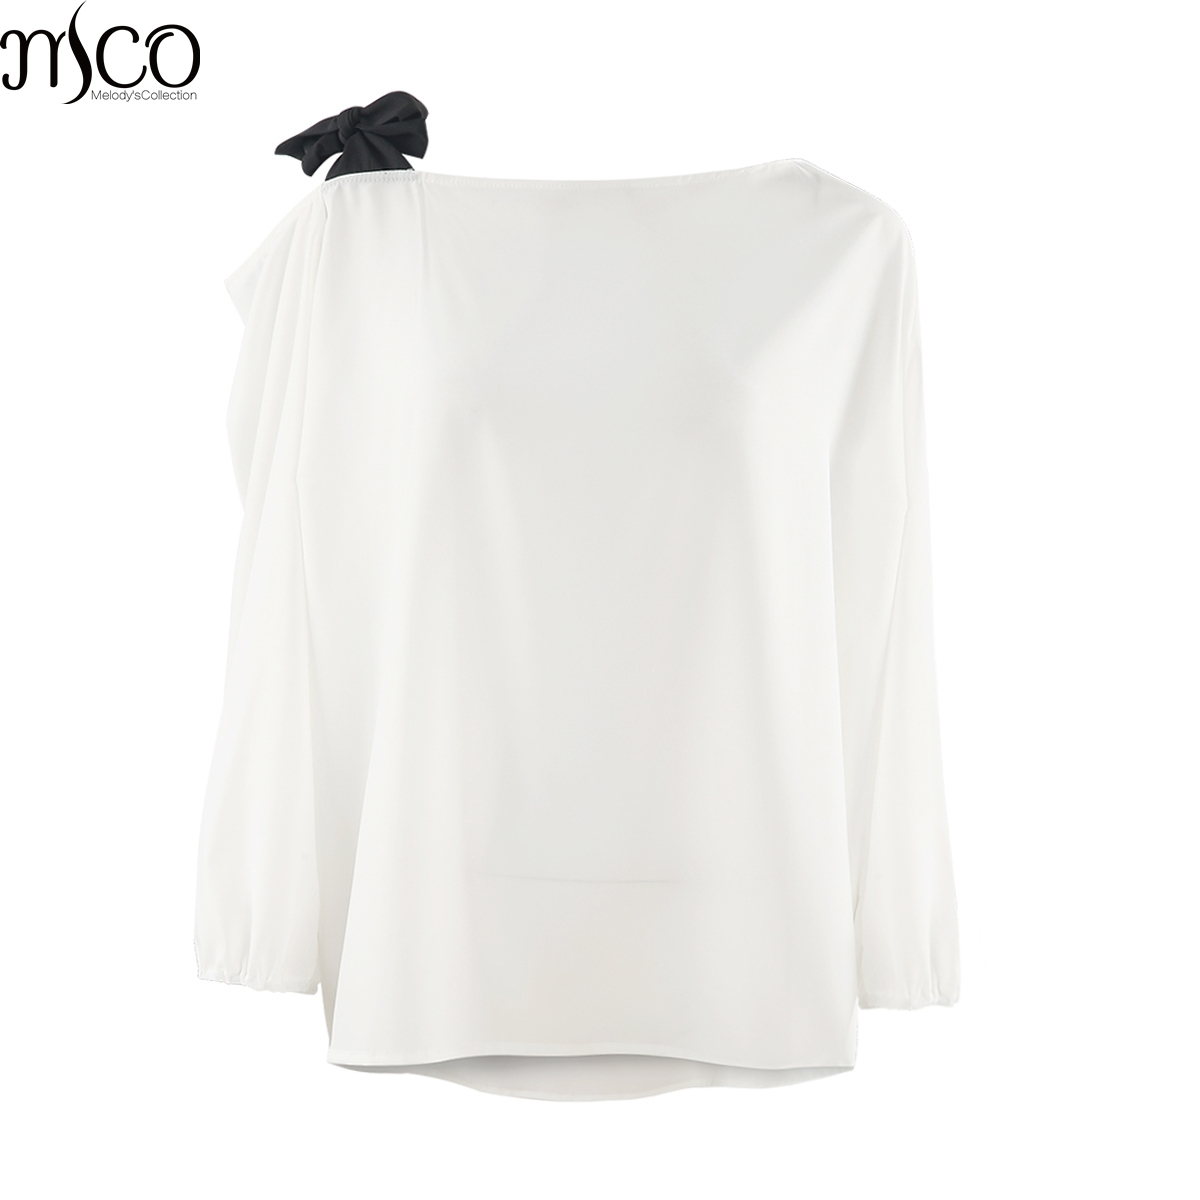 MCO 2018 Spring Sexy Tie One Shoulder Plus Size Women Top Fashion Office Ladies Oversized Blouse Basic OL White Tops 5xl 6xl 7xl